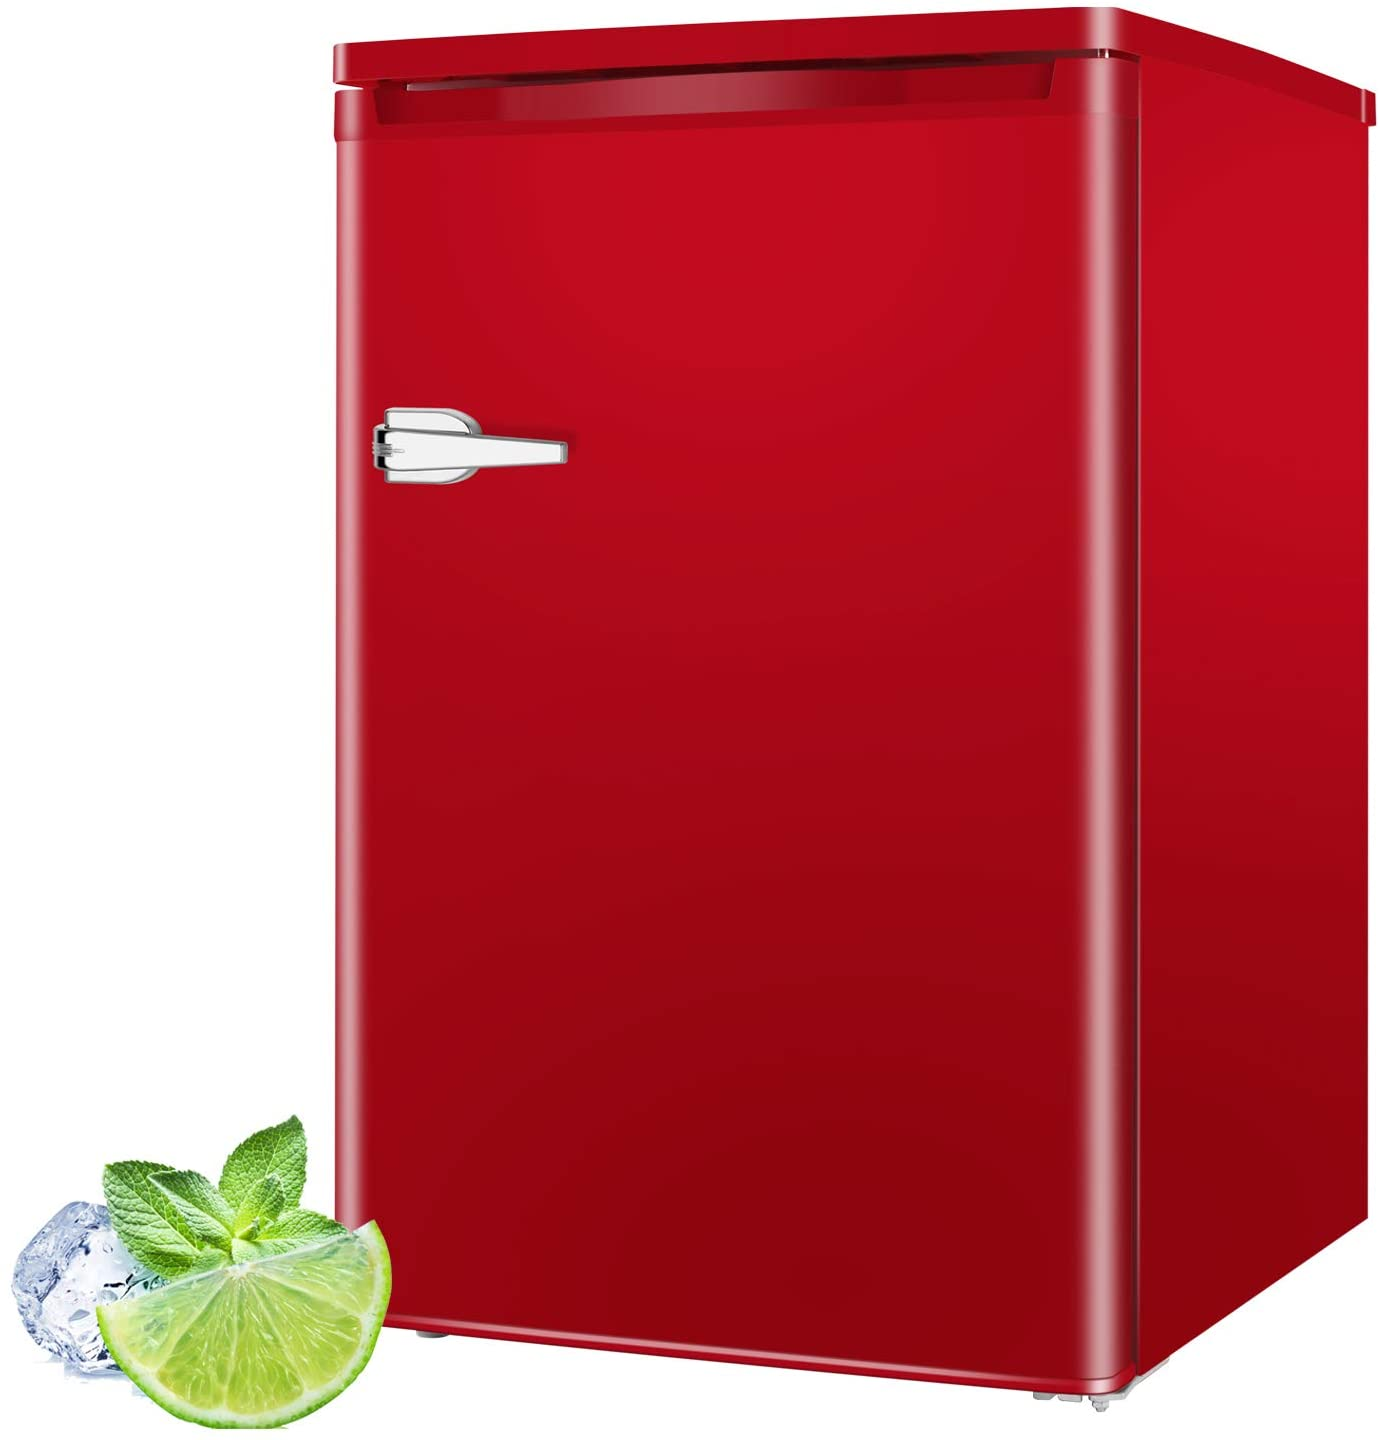 RMYHOME 3.0 Cu.ft Compact Upright Freezer, Deep Chest Freezer with Single Door and Shelves, Adjustable Leveling legs, Cold Storage of Food & Beverage for Home, Office, Dormitory, Apartment, Red